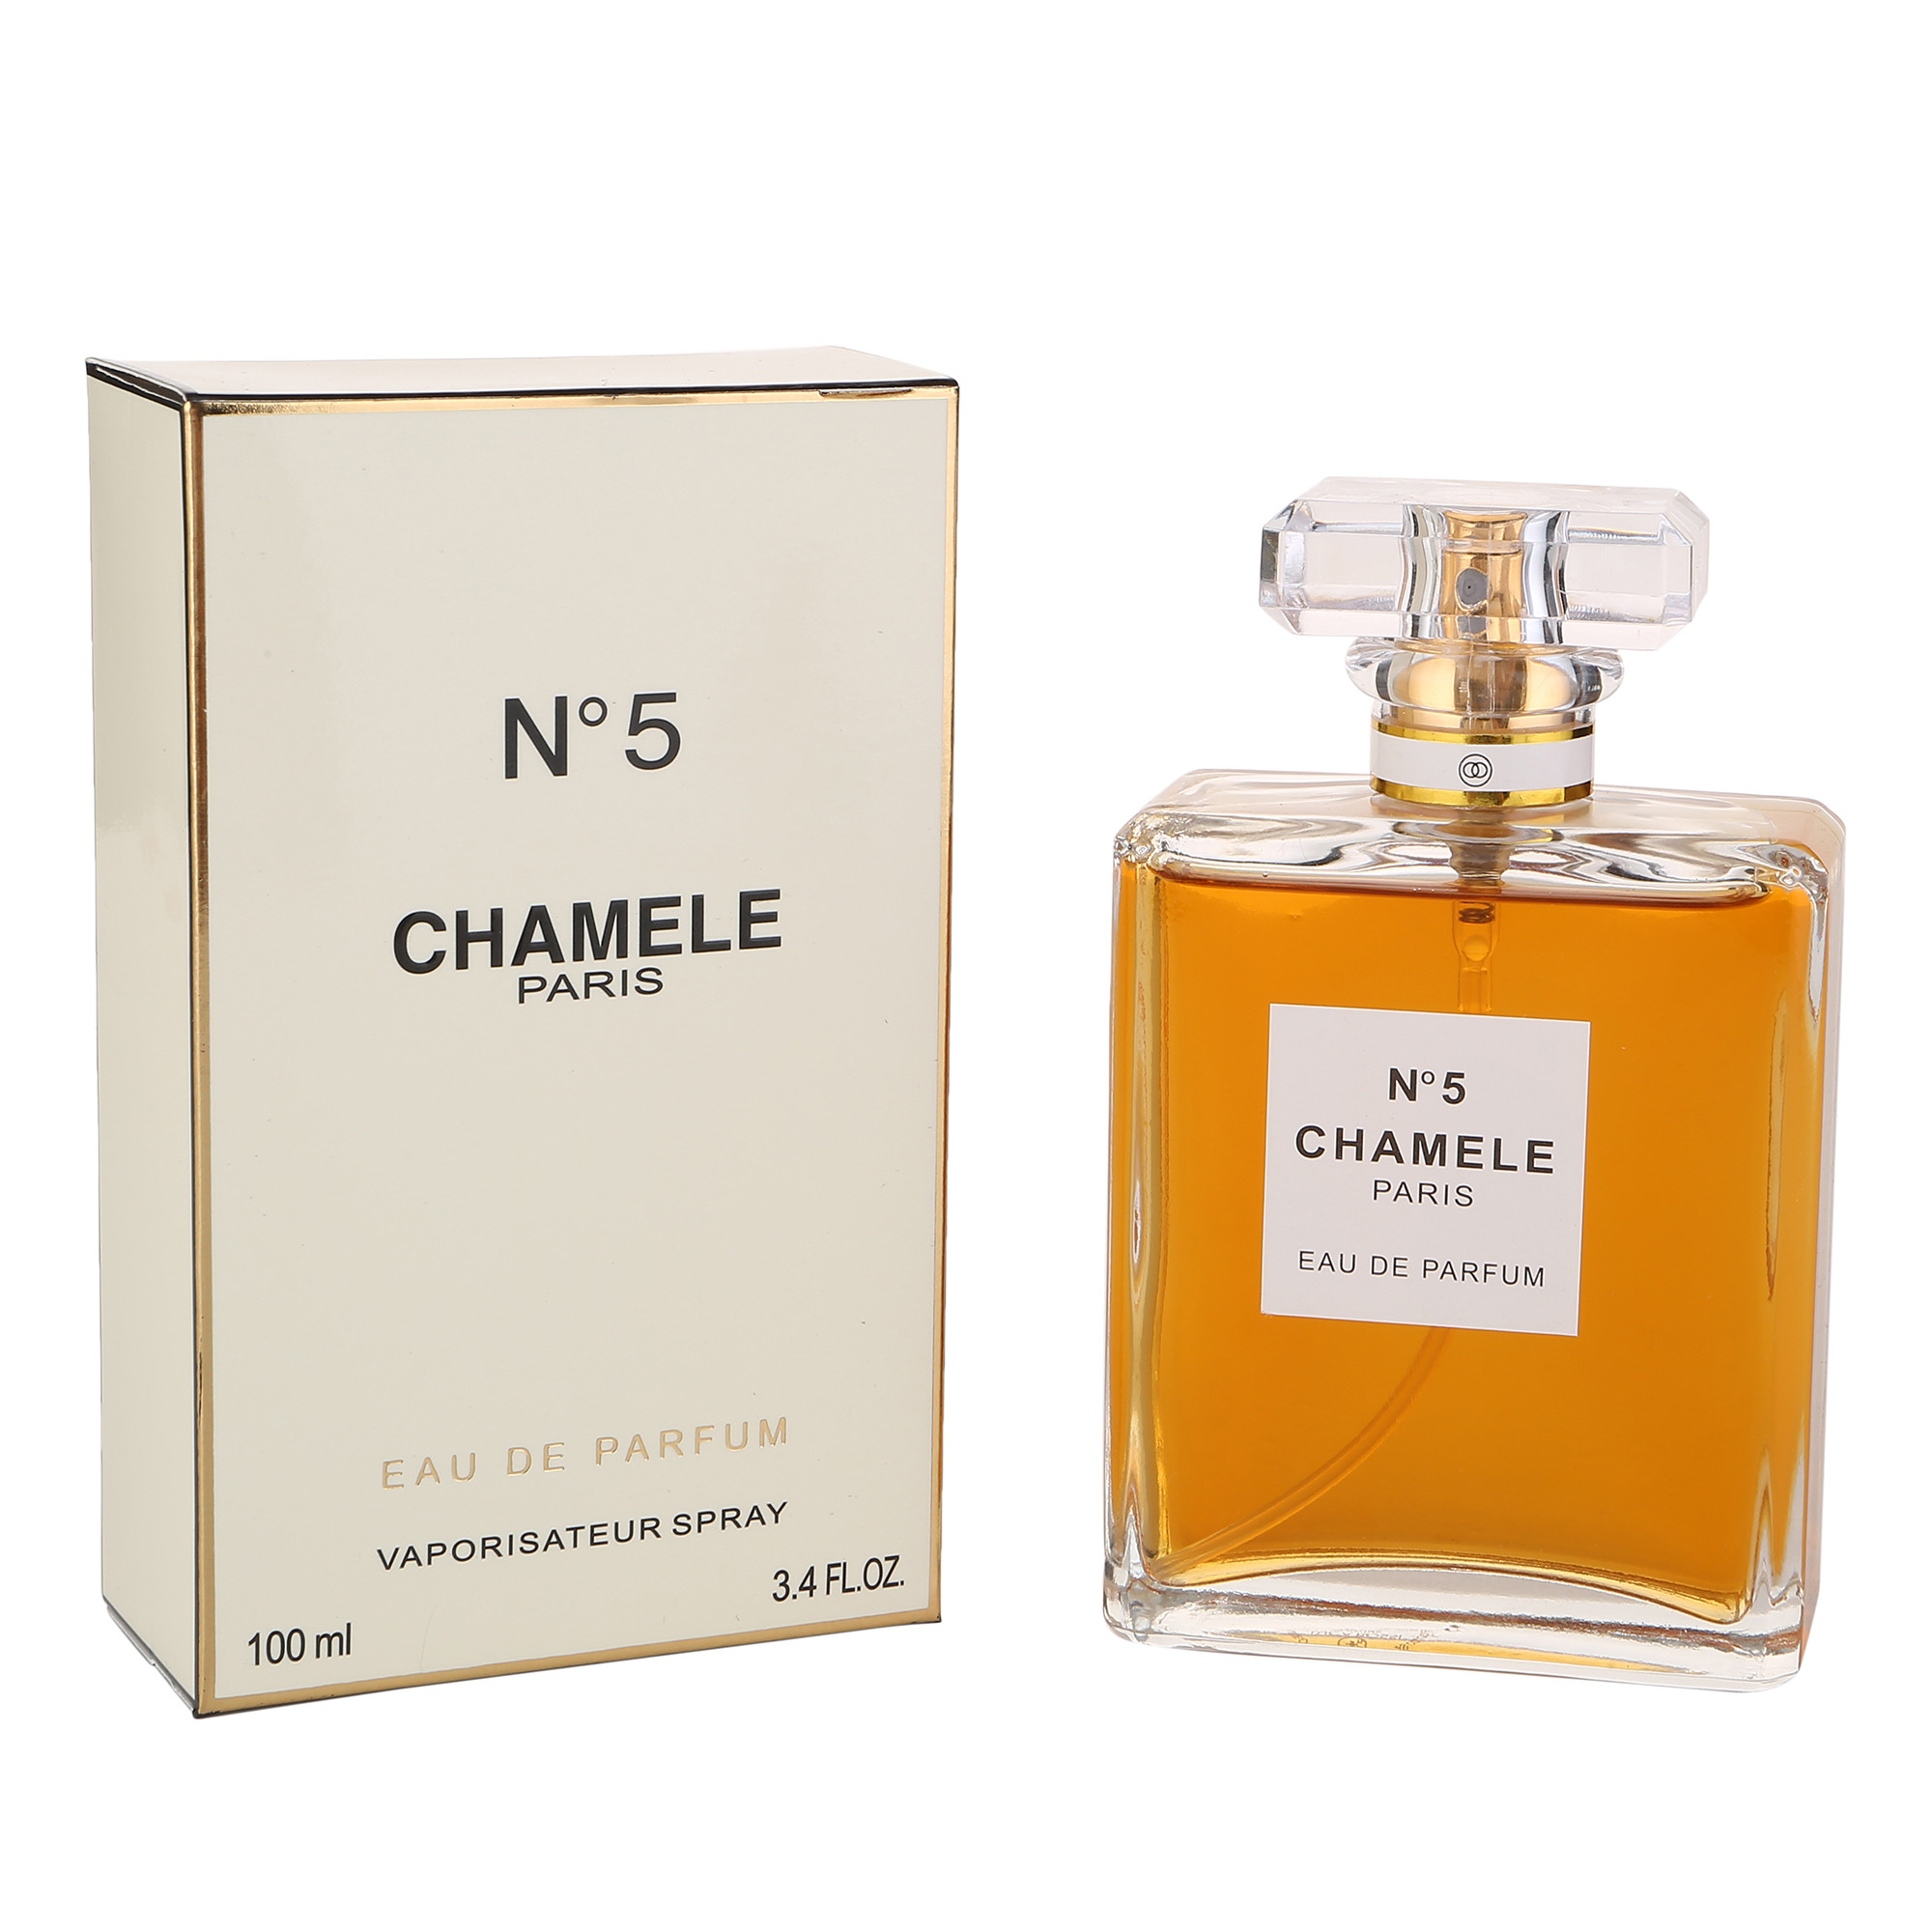 Alibaba.com / JY3523  Good Quality 100ml Chamele Perfume Luca Bossi for Women